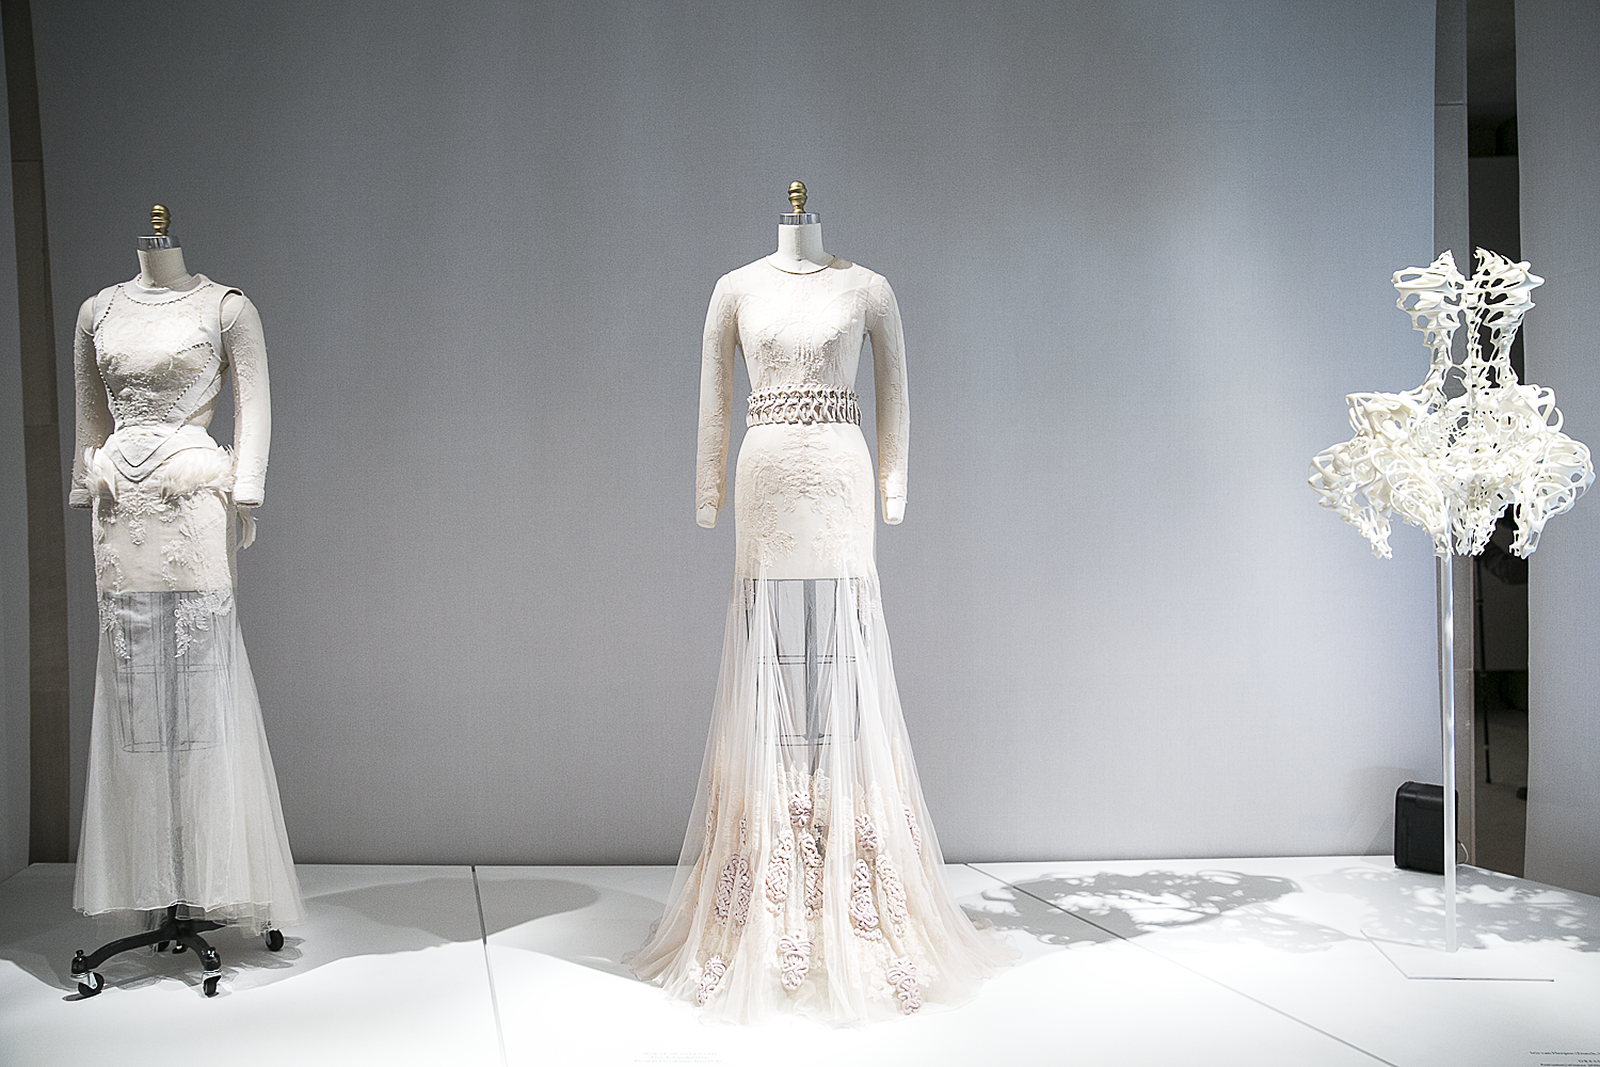 Met_Manus_Machina_Fashion_Exhibition_New_York_3.png